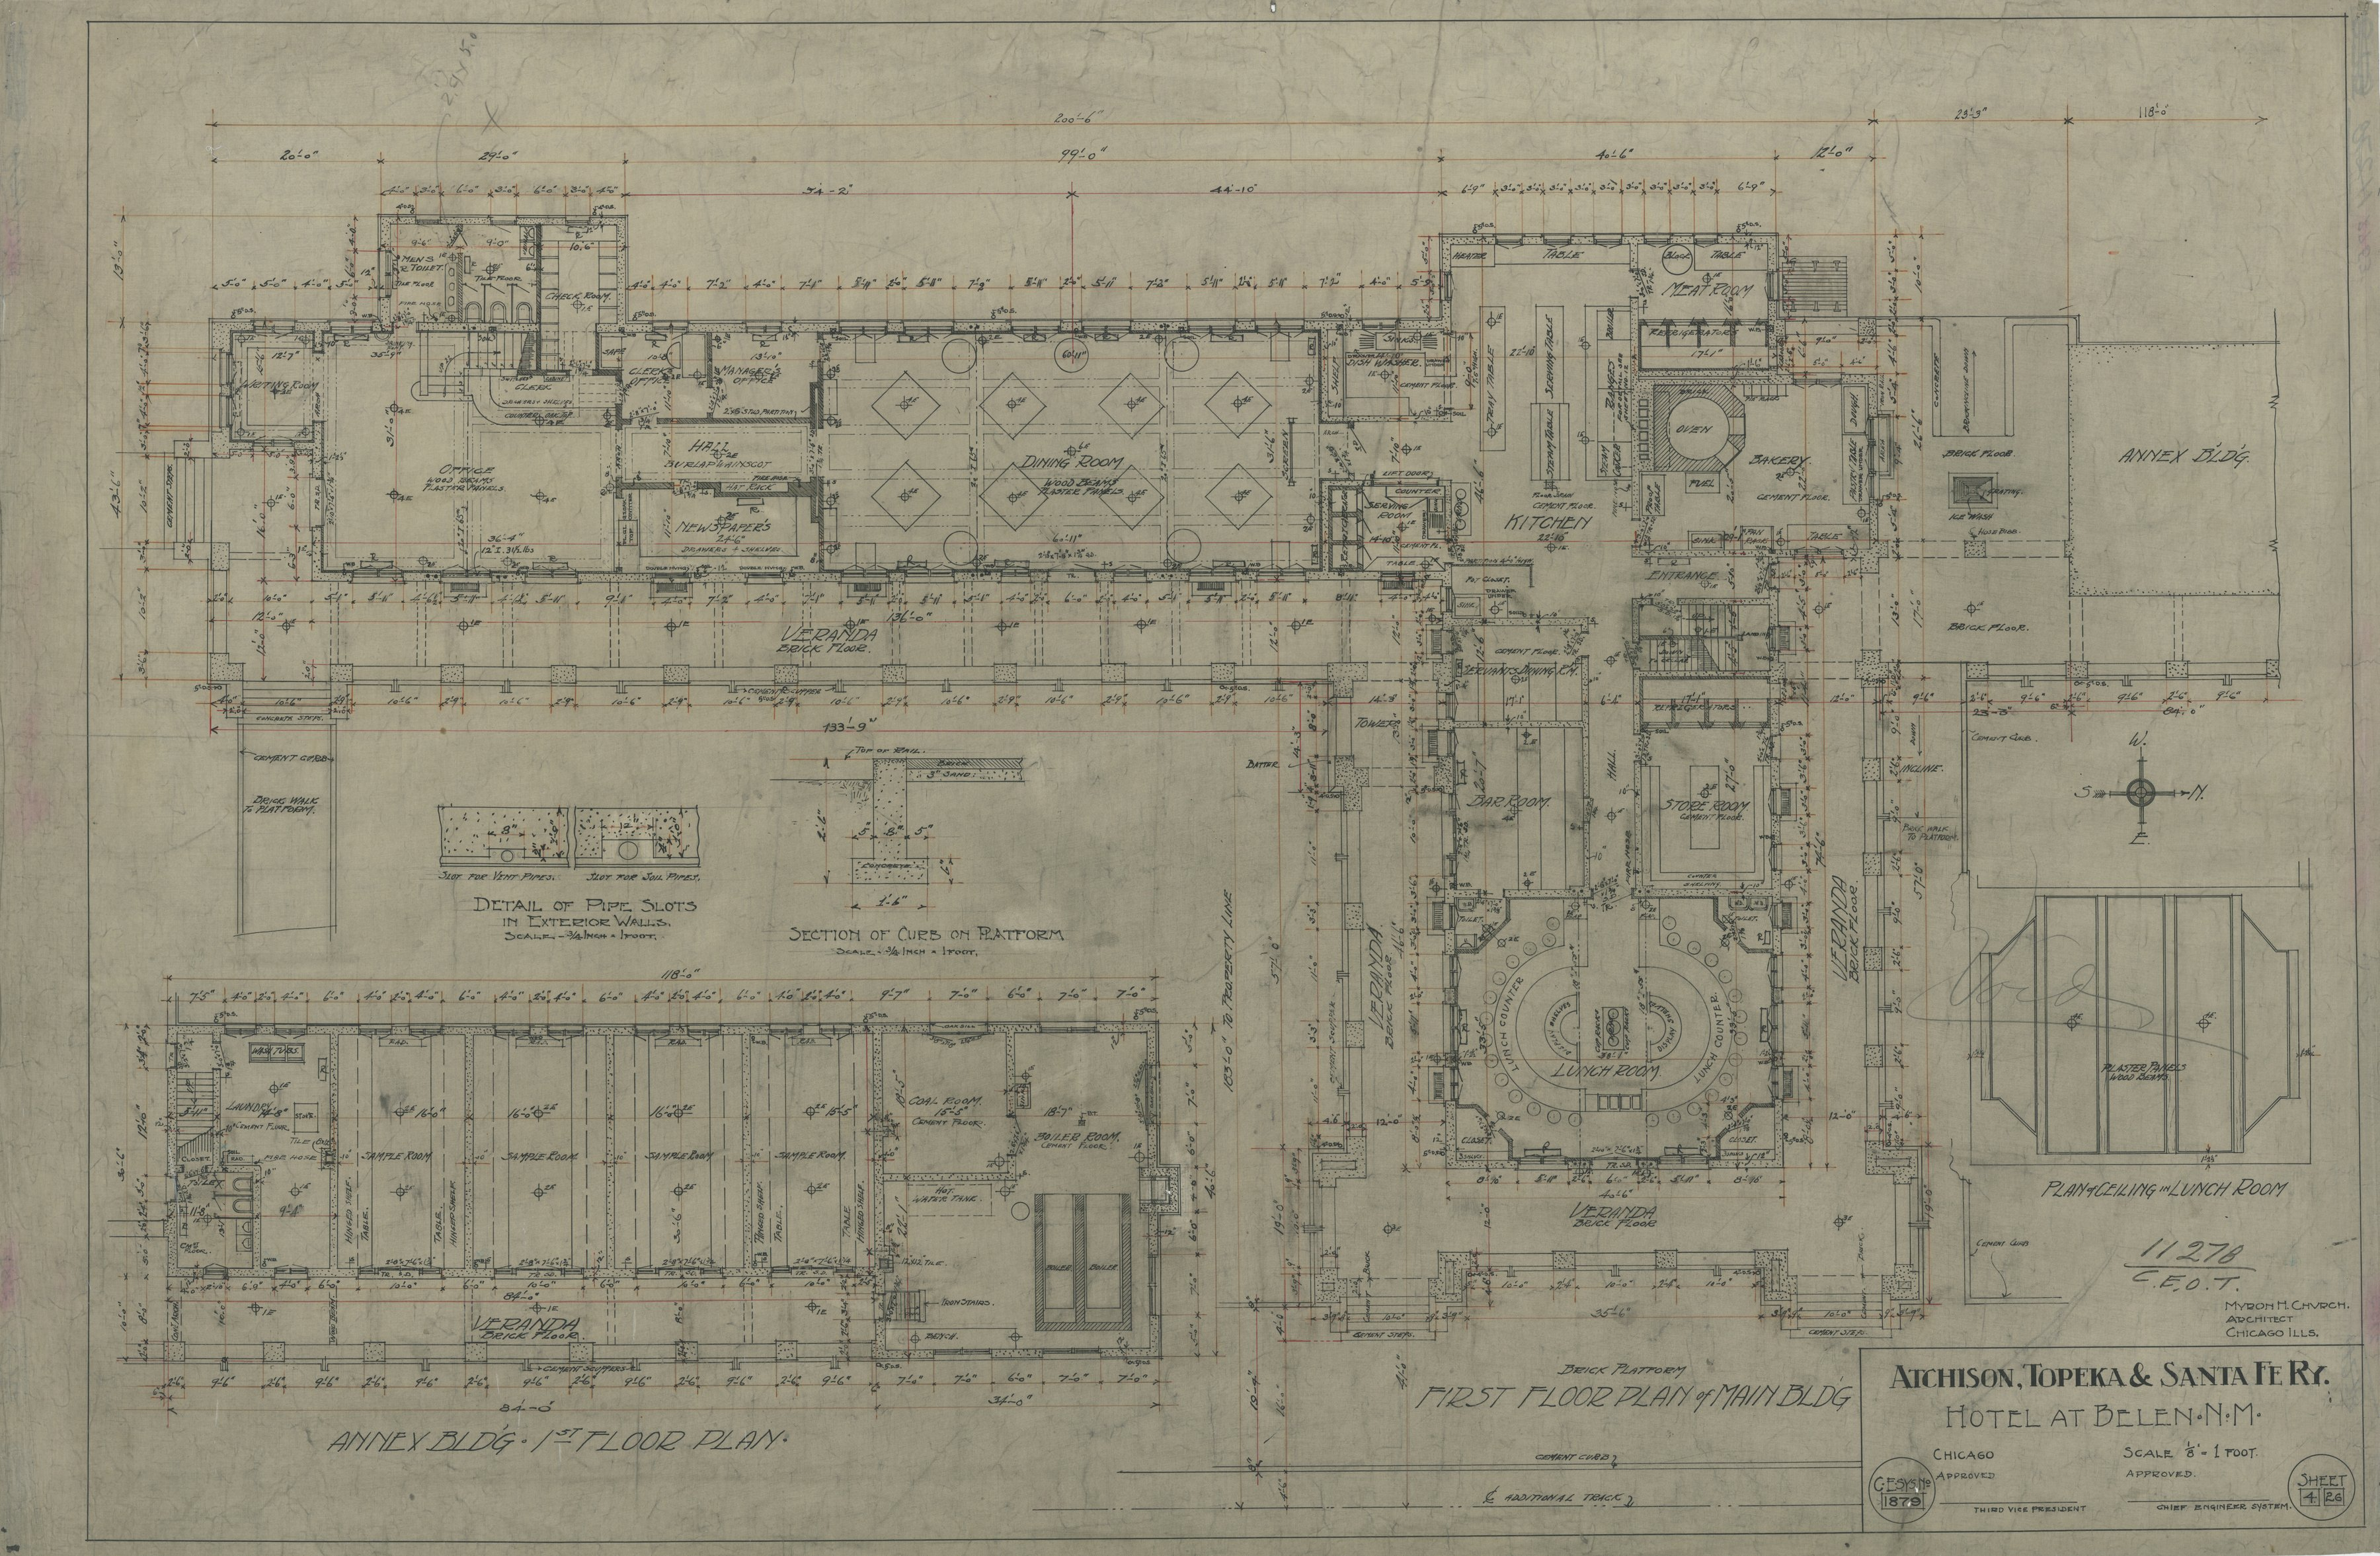 AT&SF Company hotel, Belen, New Mexico - First Floor Plan Main Bldg, 1879